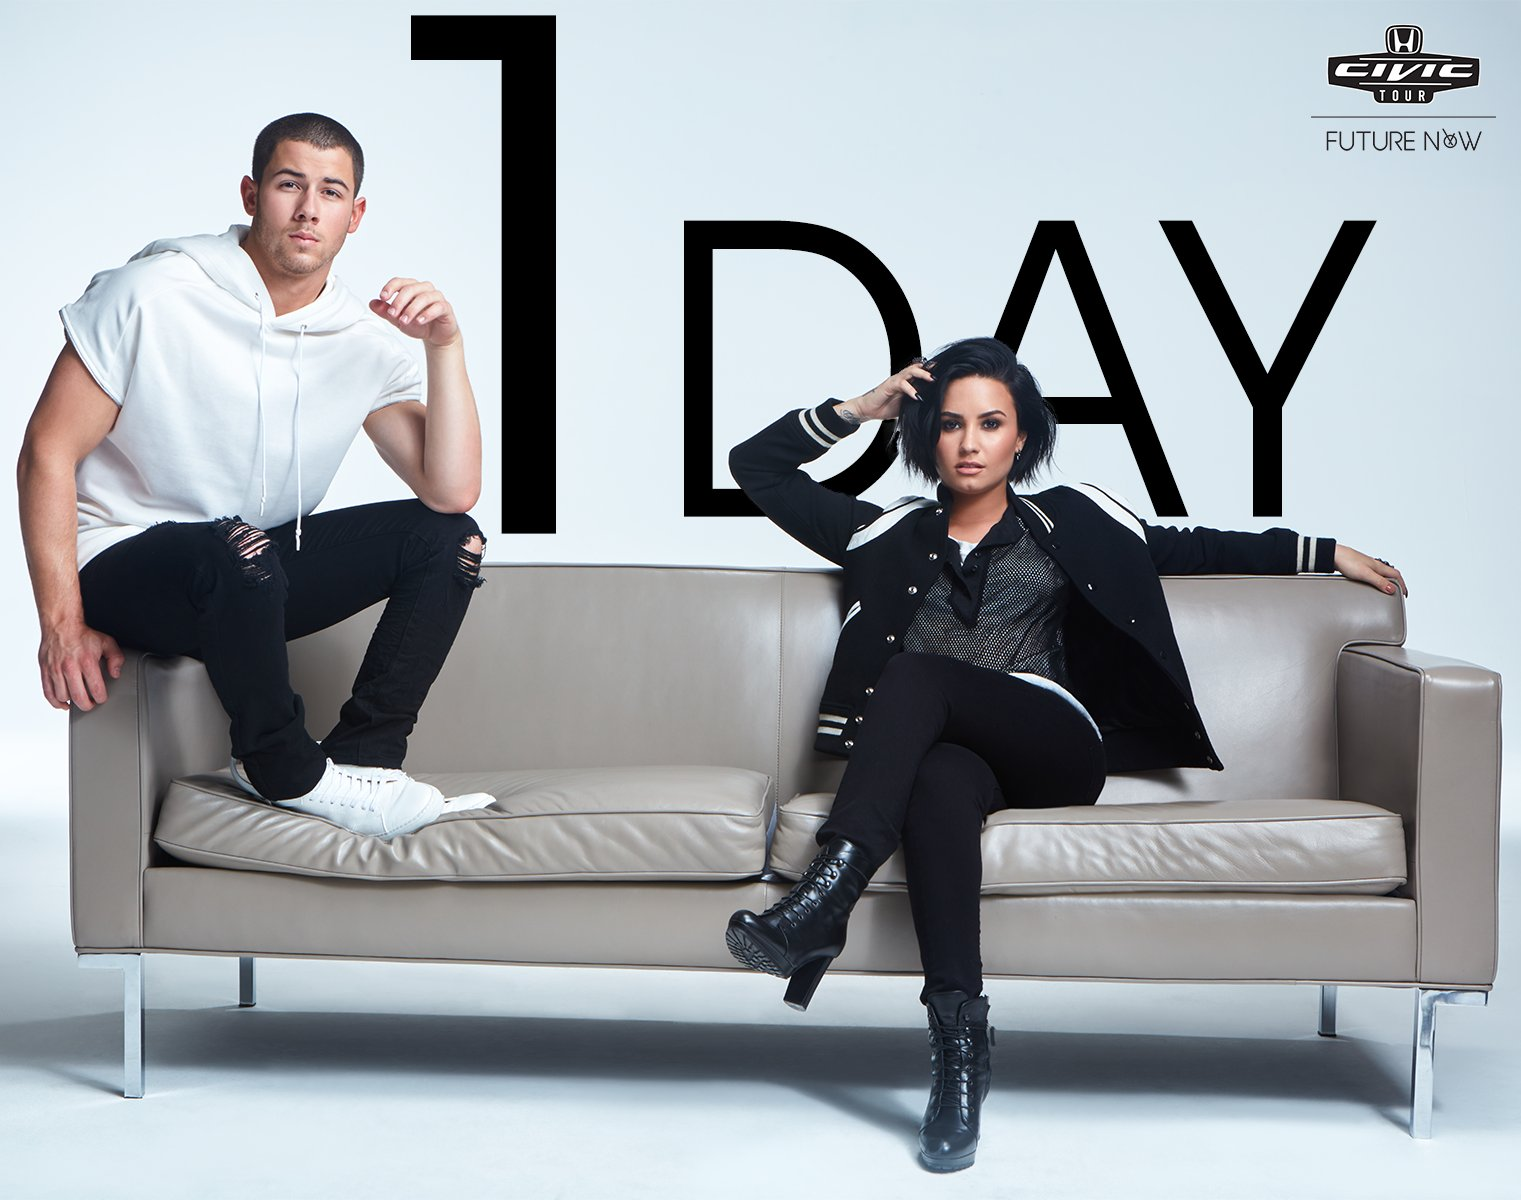 1 day before @PhilyMack's @DDLovato & @NickJonas kick off #FutureNowTour! Have your tix yet? https://t.co/lhPA7Wanzk https://t.co/2fUm2NibIT